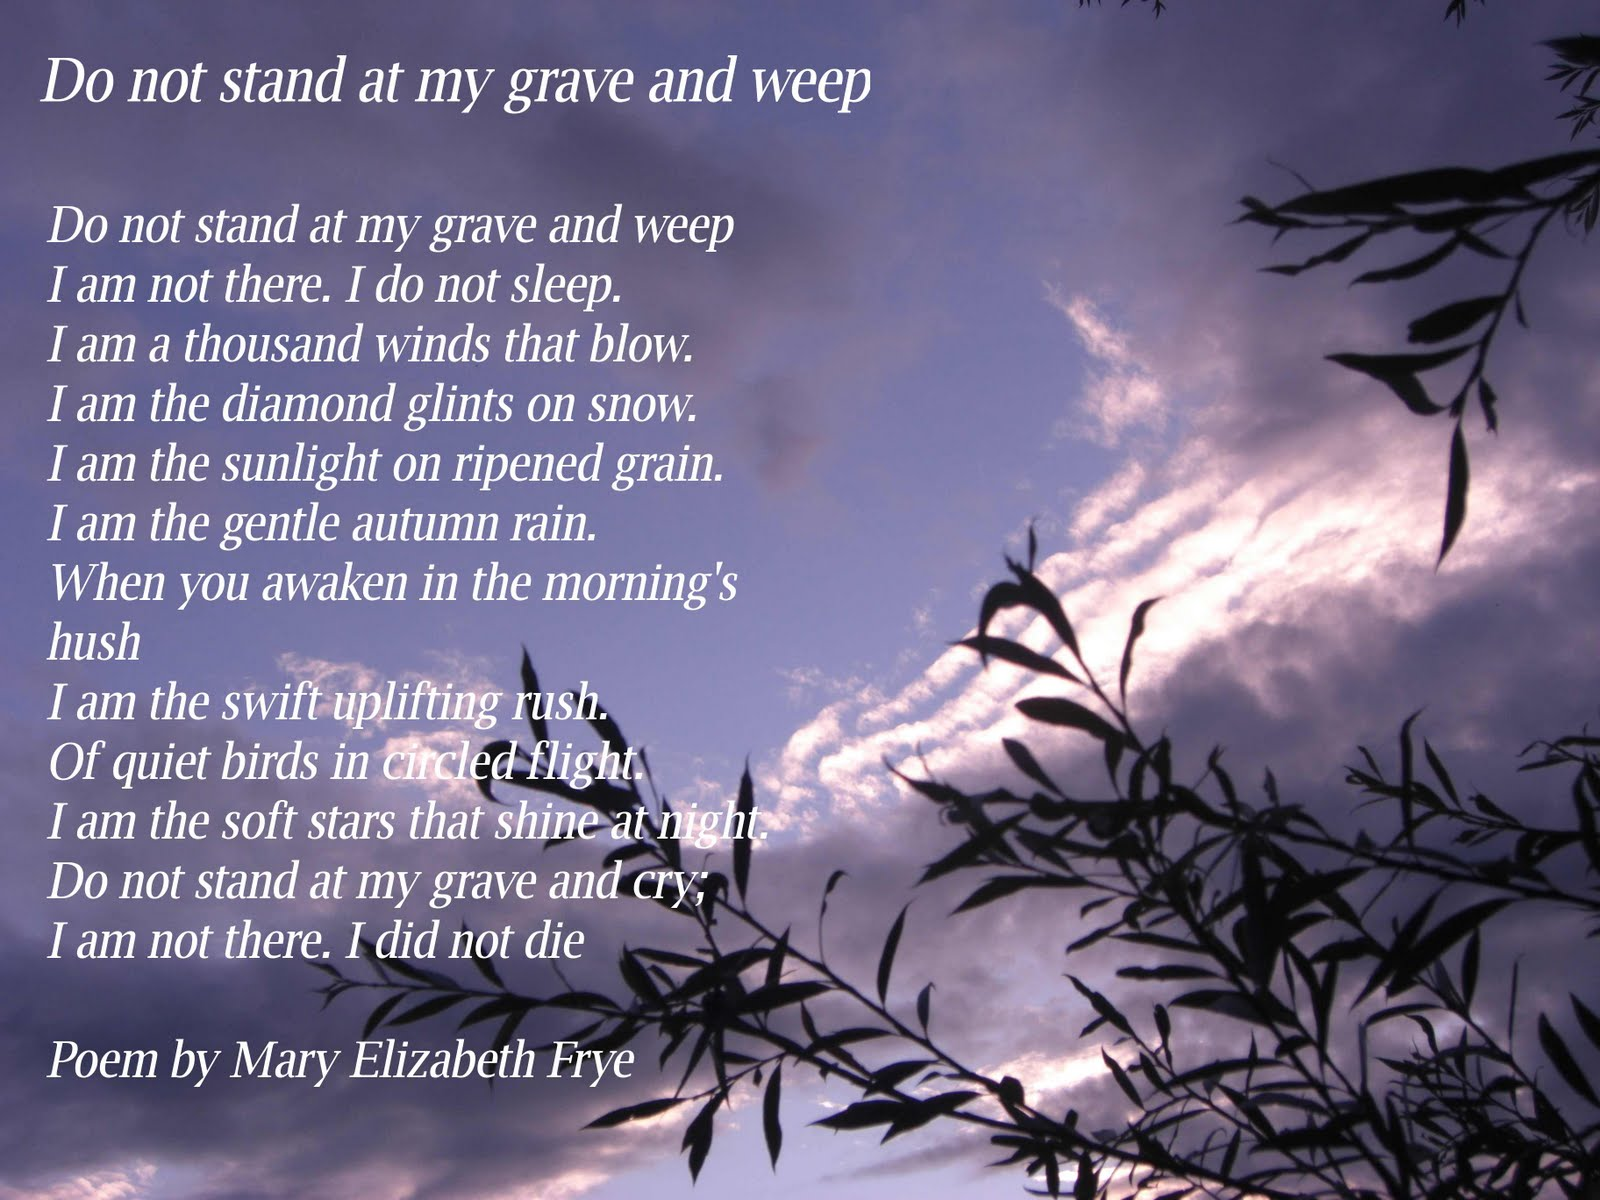 Do Not Stand at My Grave and Weep by Mary Frye